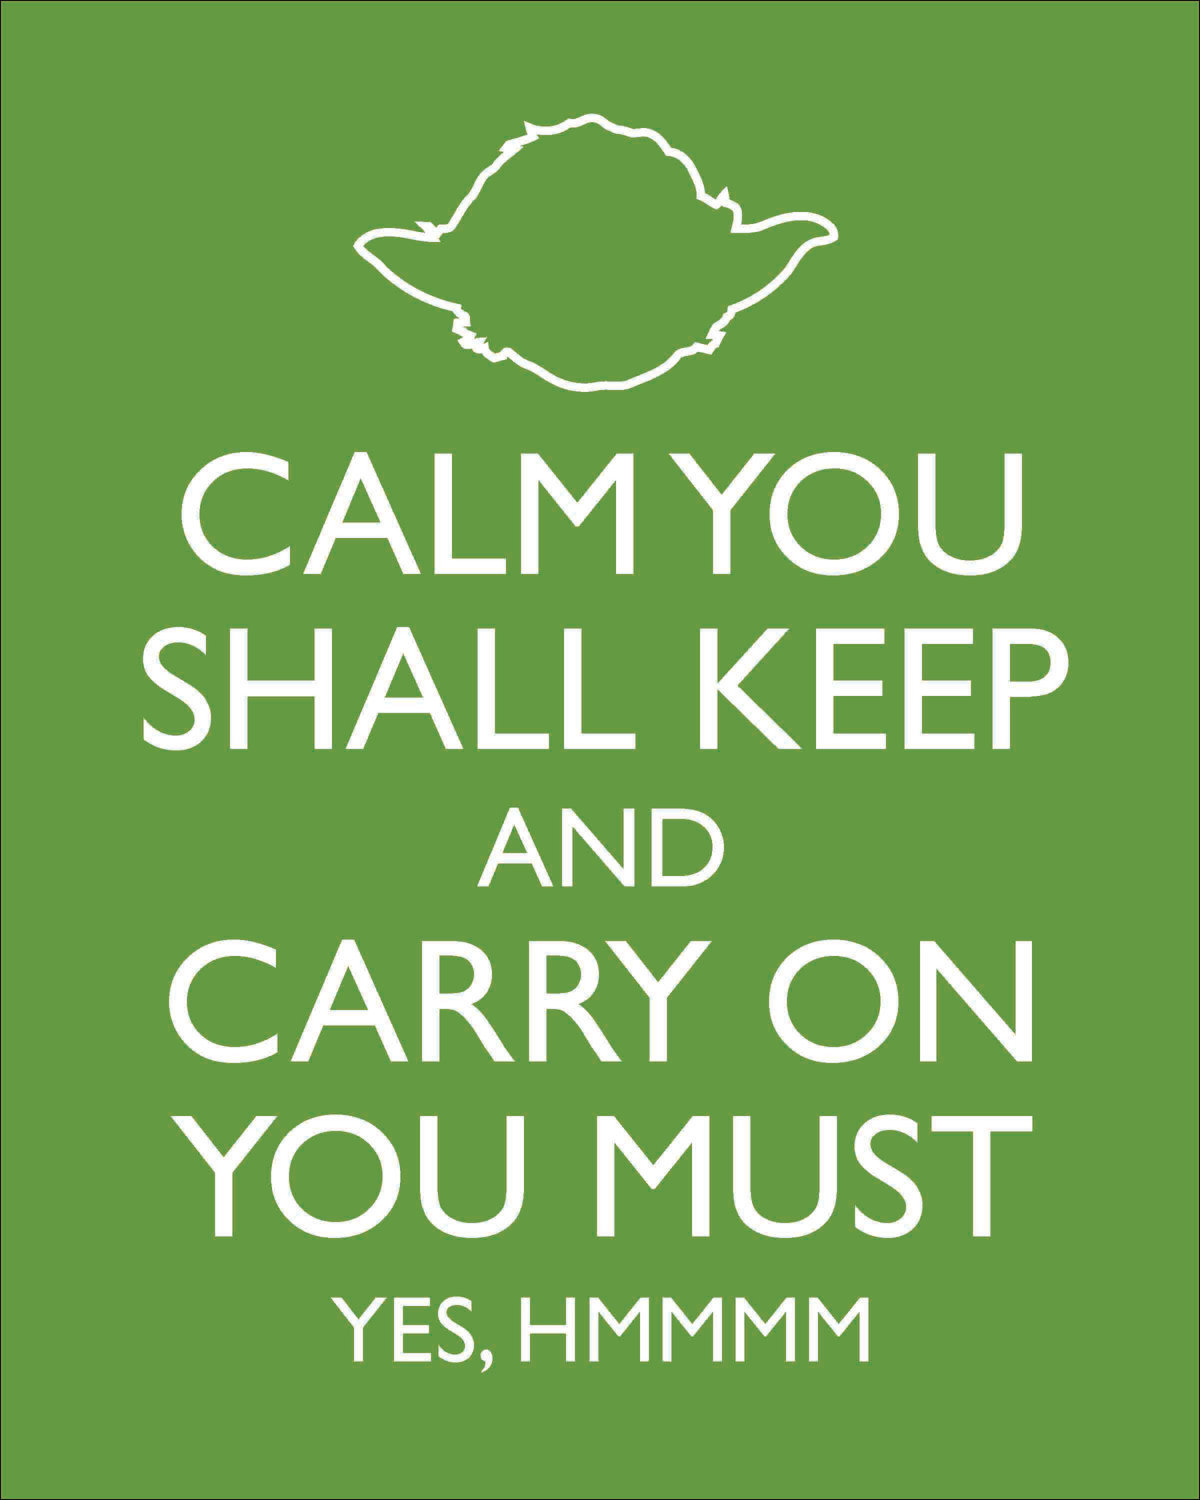 justify-sexy:  Keep Calm and Meme On! Best of the Keep Calm meme - ad http://bit.ly/Wxosds